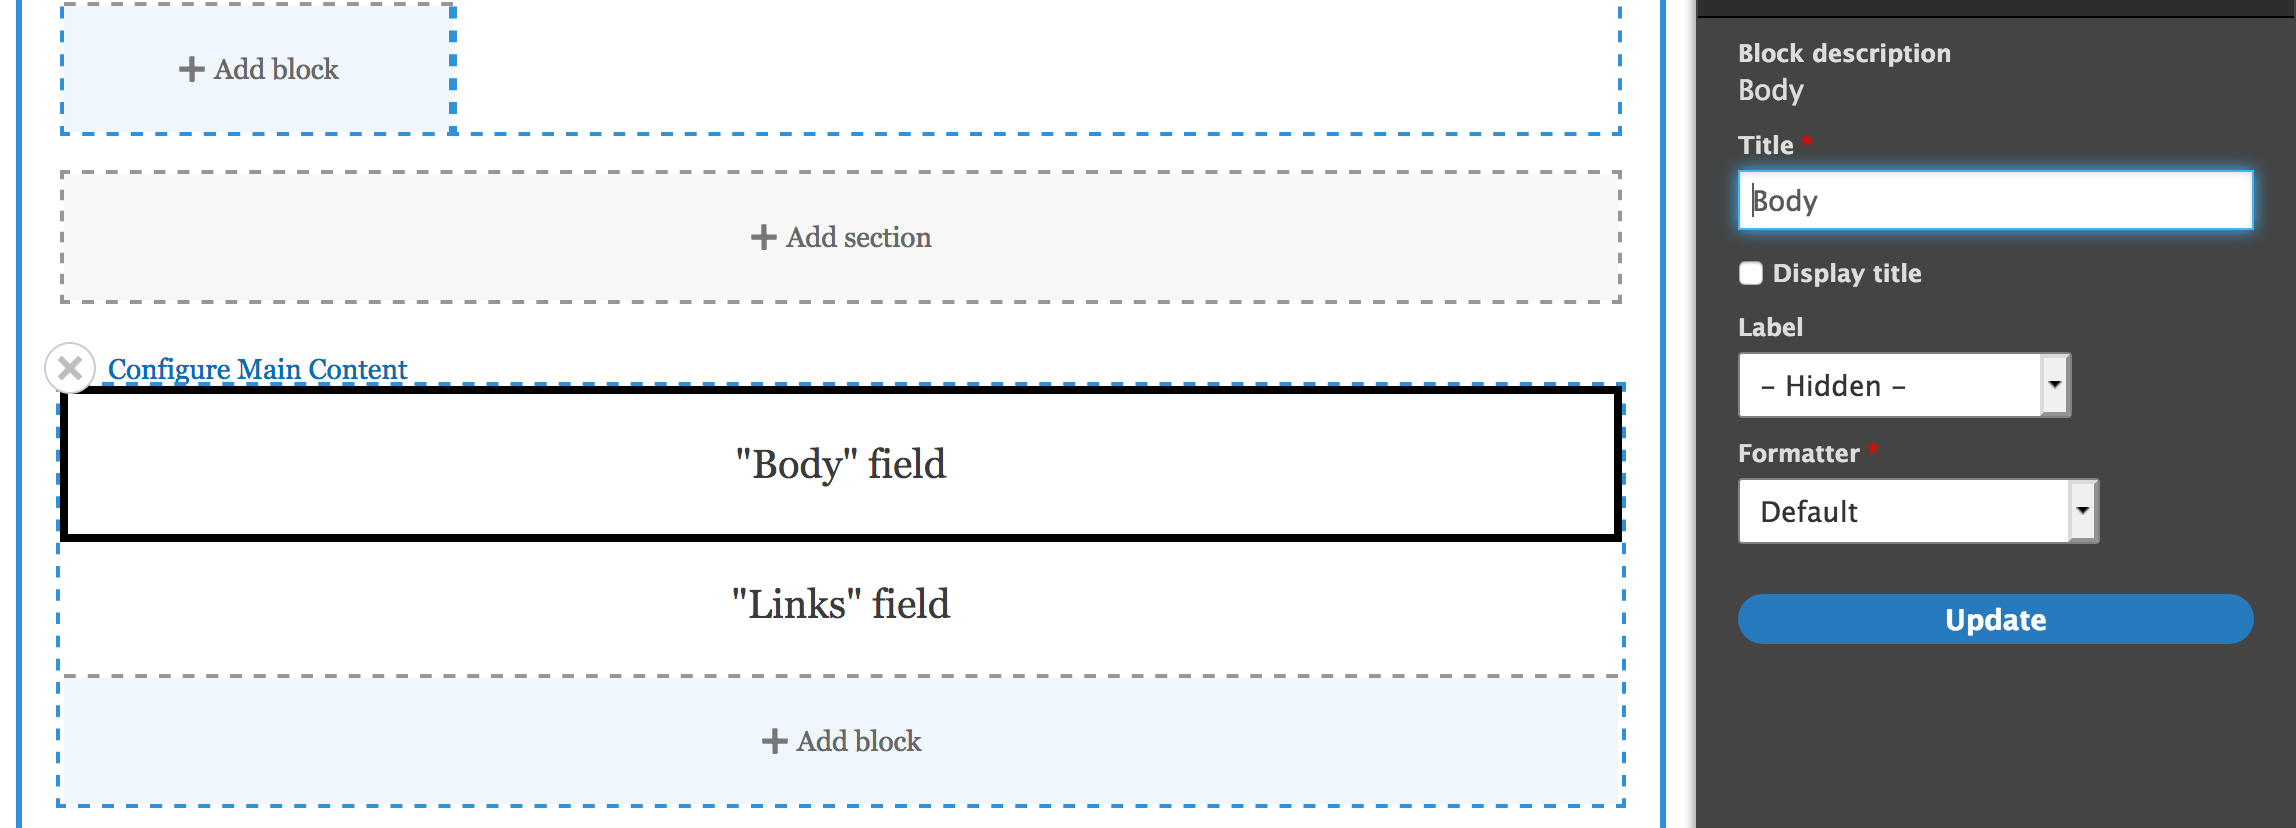 Screenshot of Layout Builder body field options